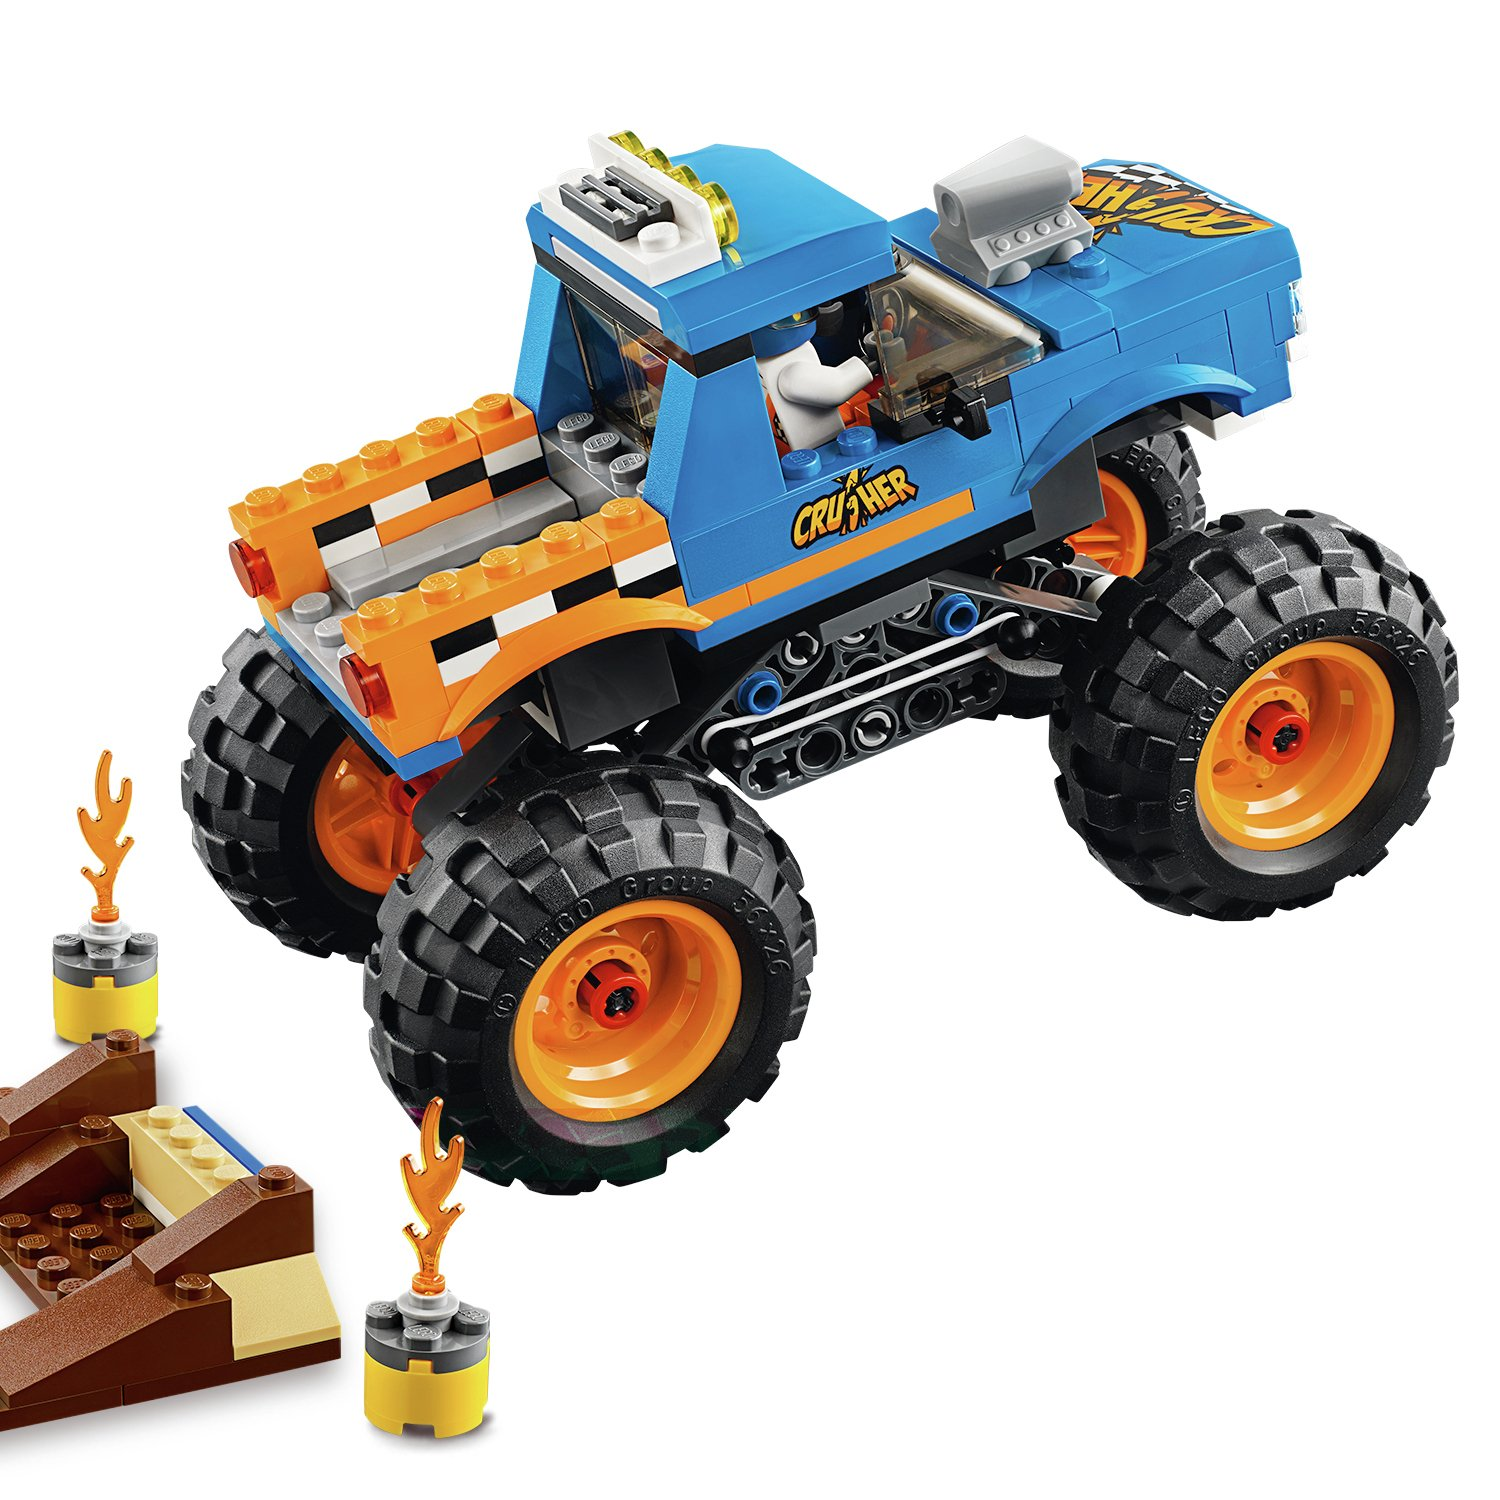 LEGO City Vehicles Monster Truck Toy Reviews